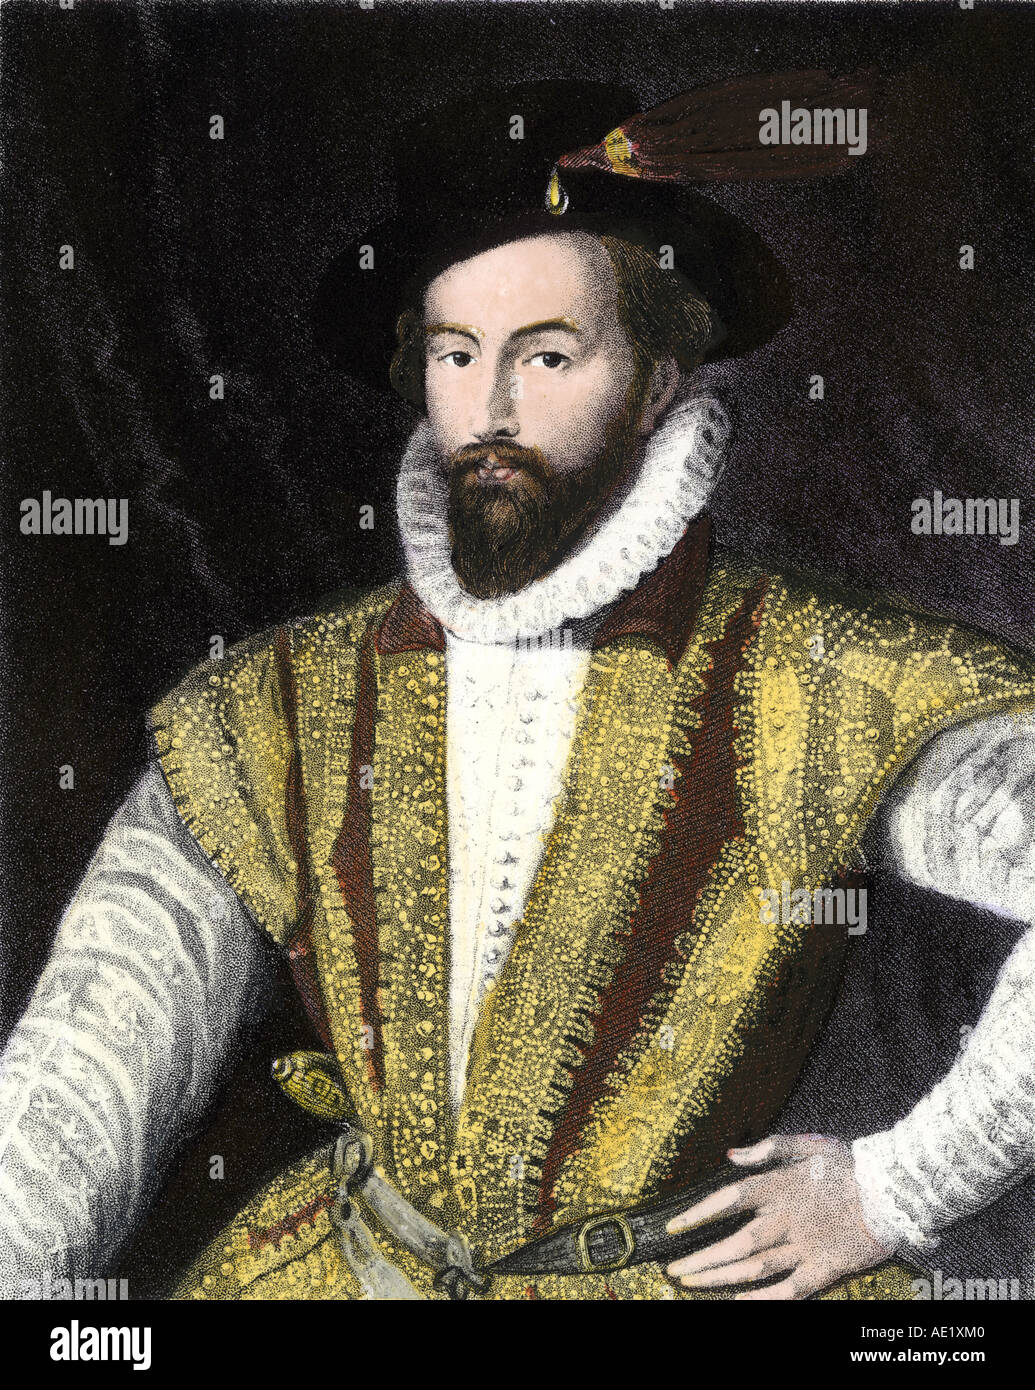 Sir Walter Raleigh. Hand-colored steel engraving - Stock Image